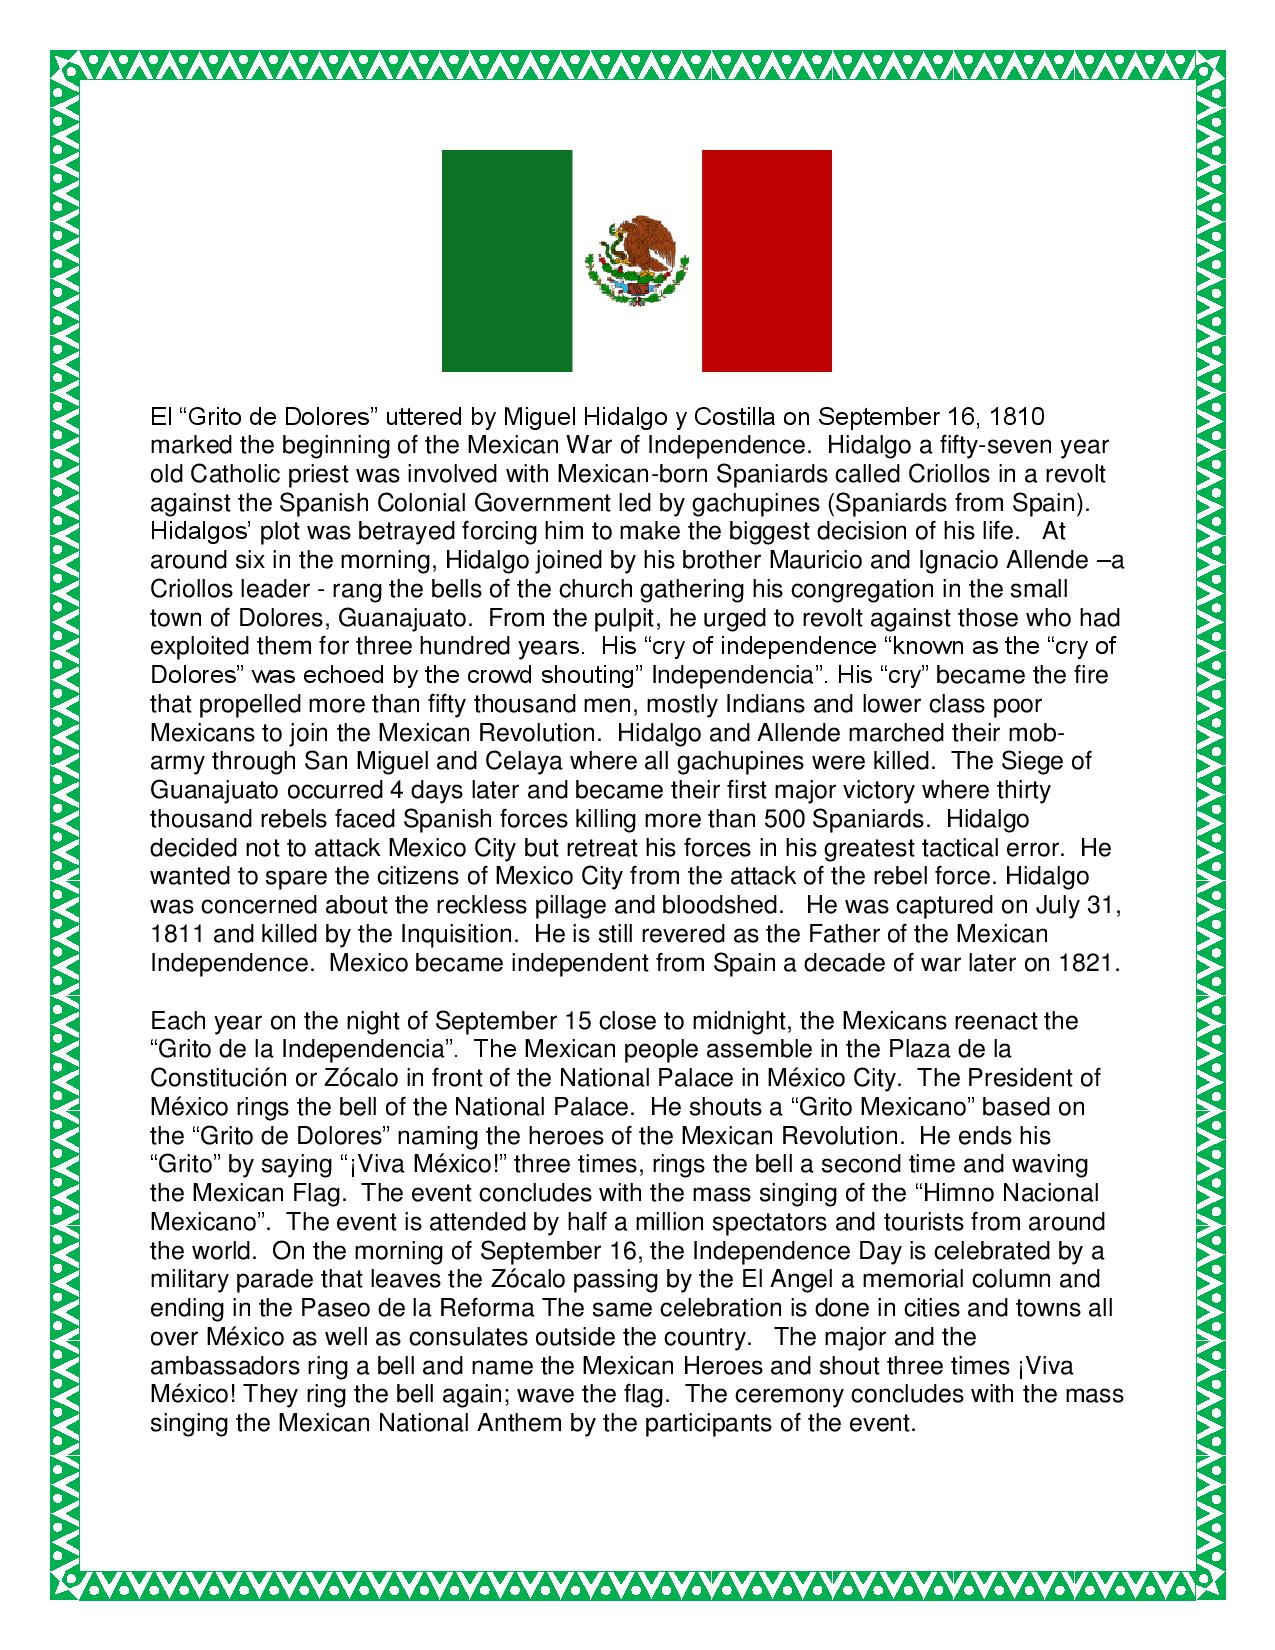 Essay On Mexican Independence Day